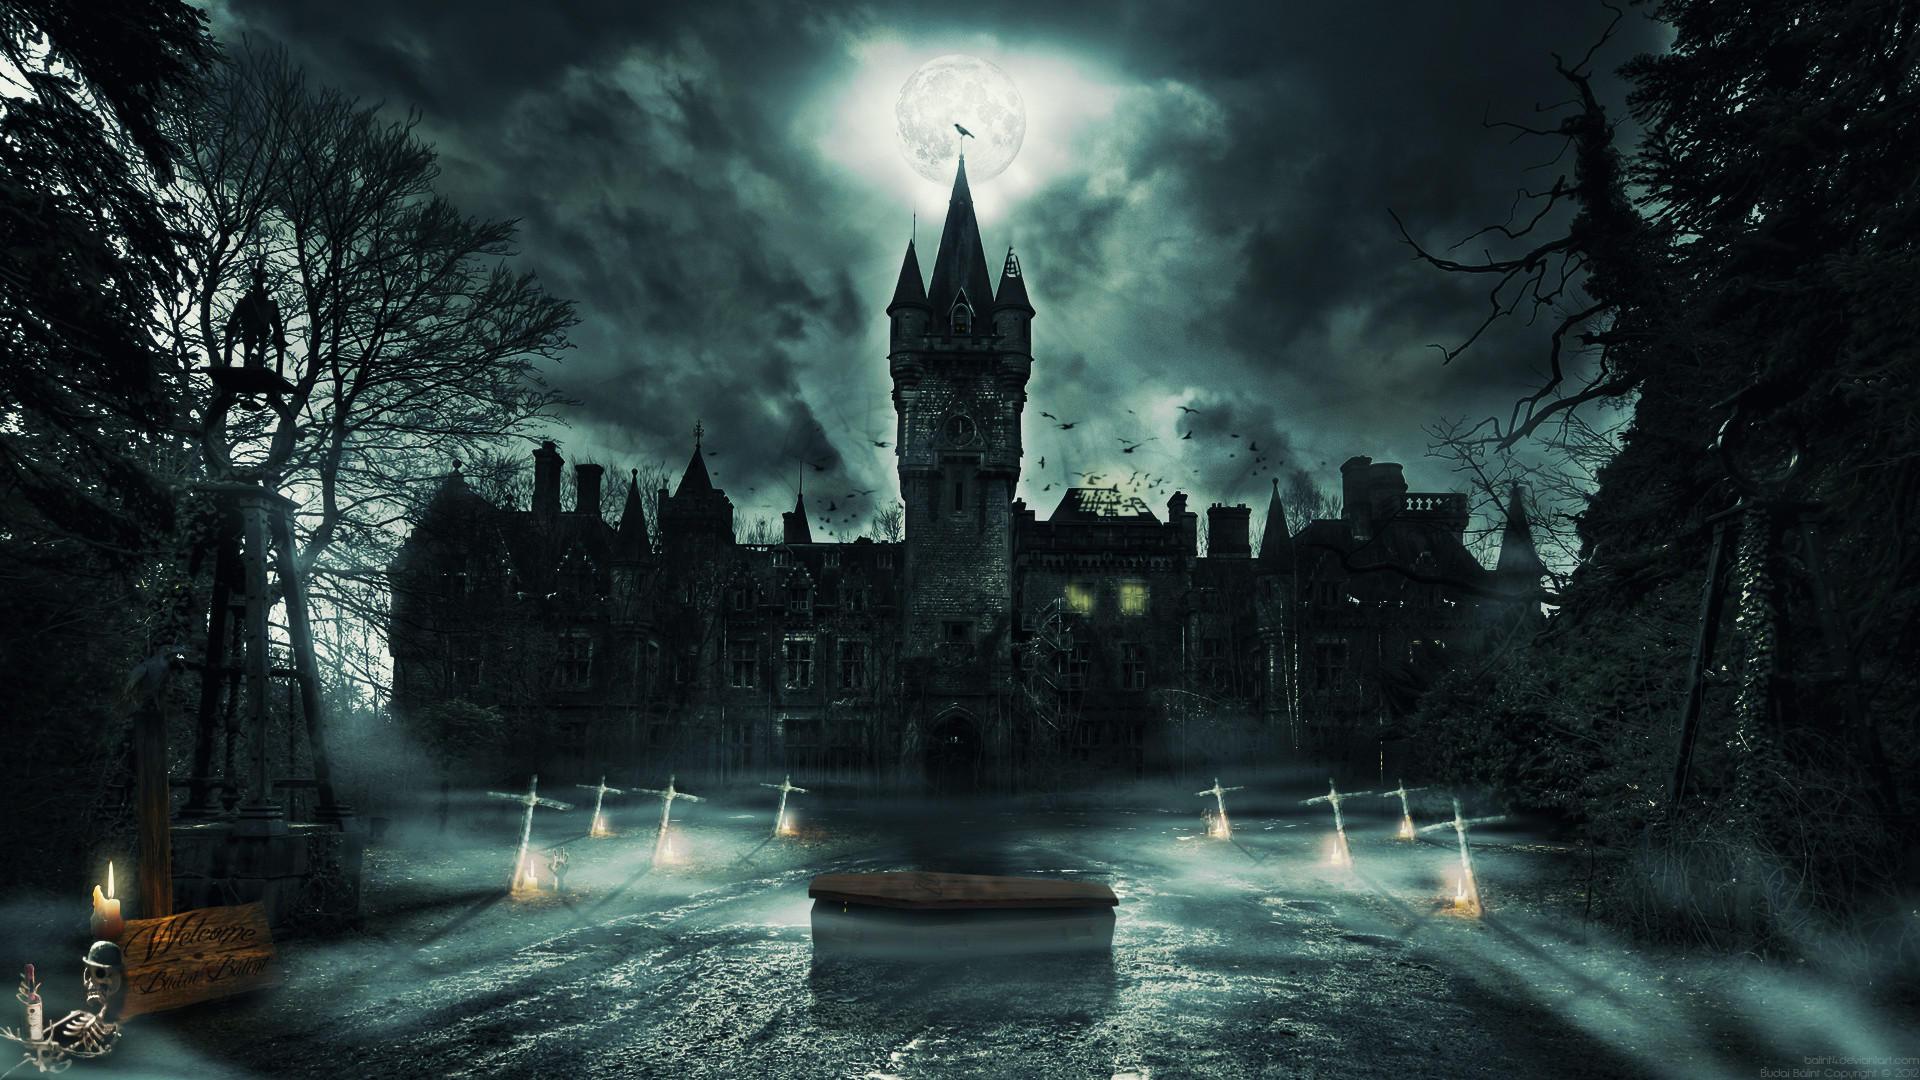 Res: 1920x1080, Ghost Castle by balint4 Ghost Castle by balint4